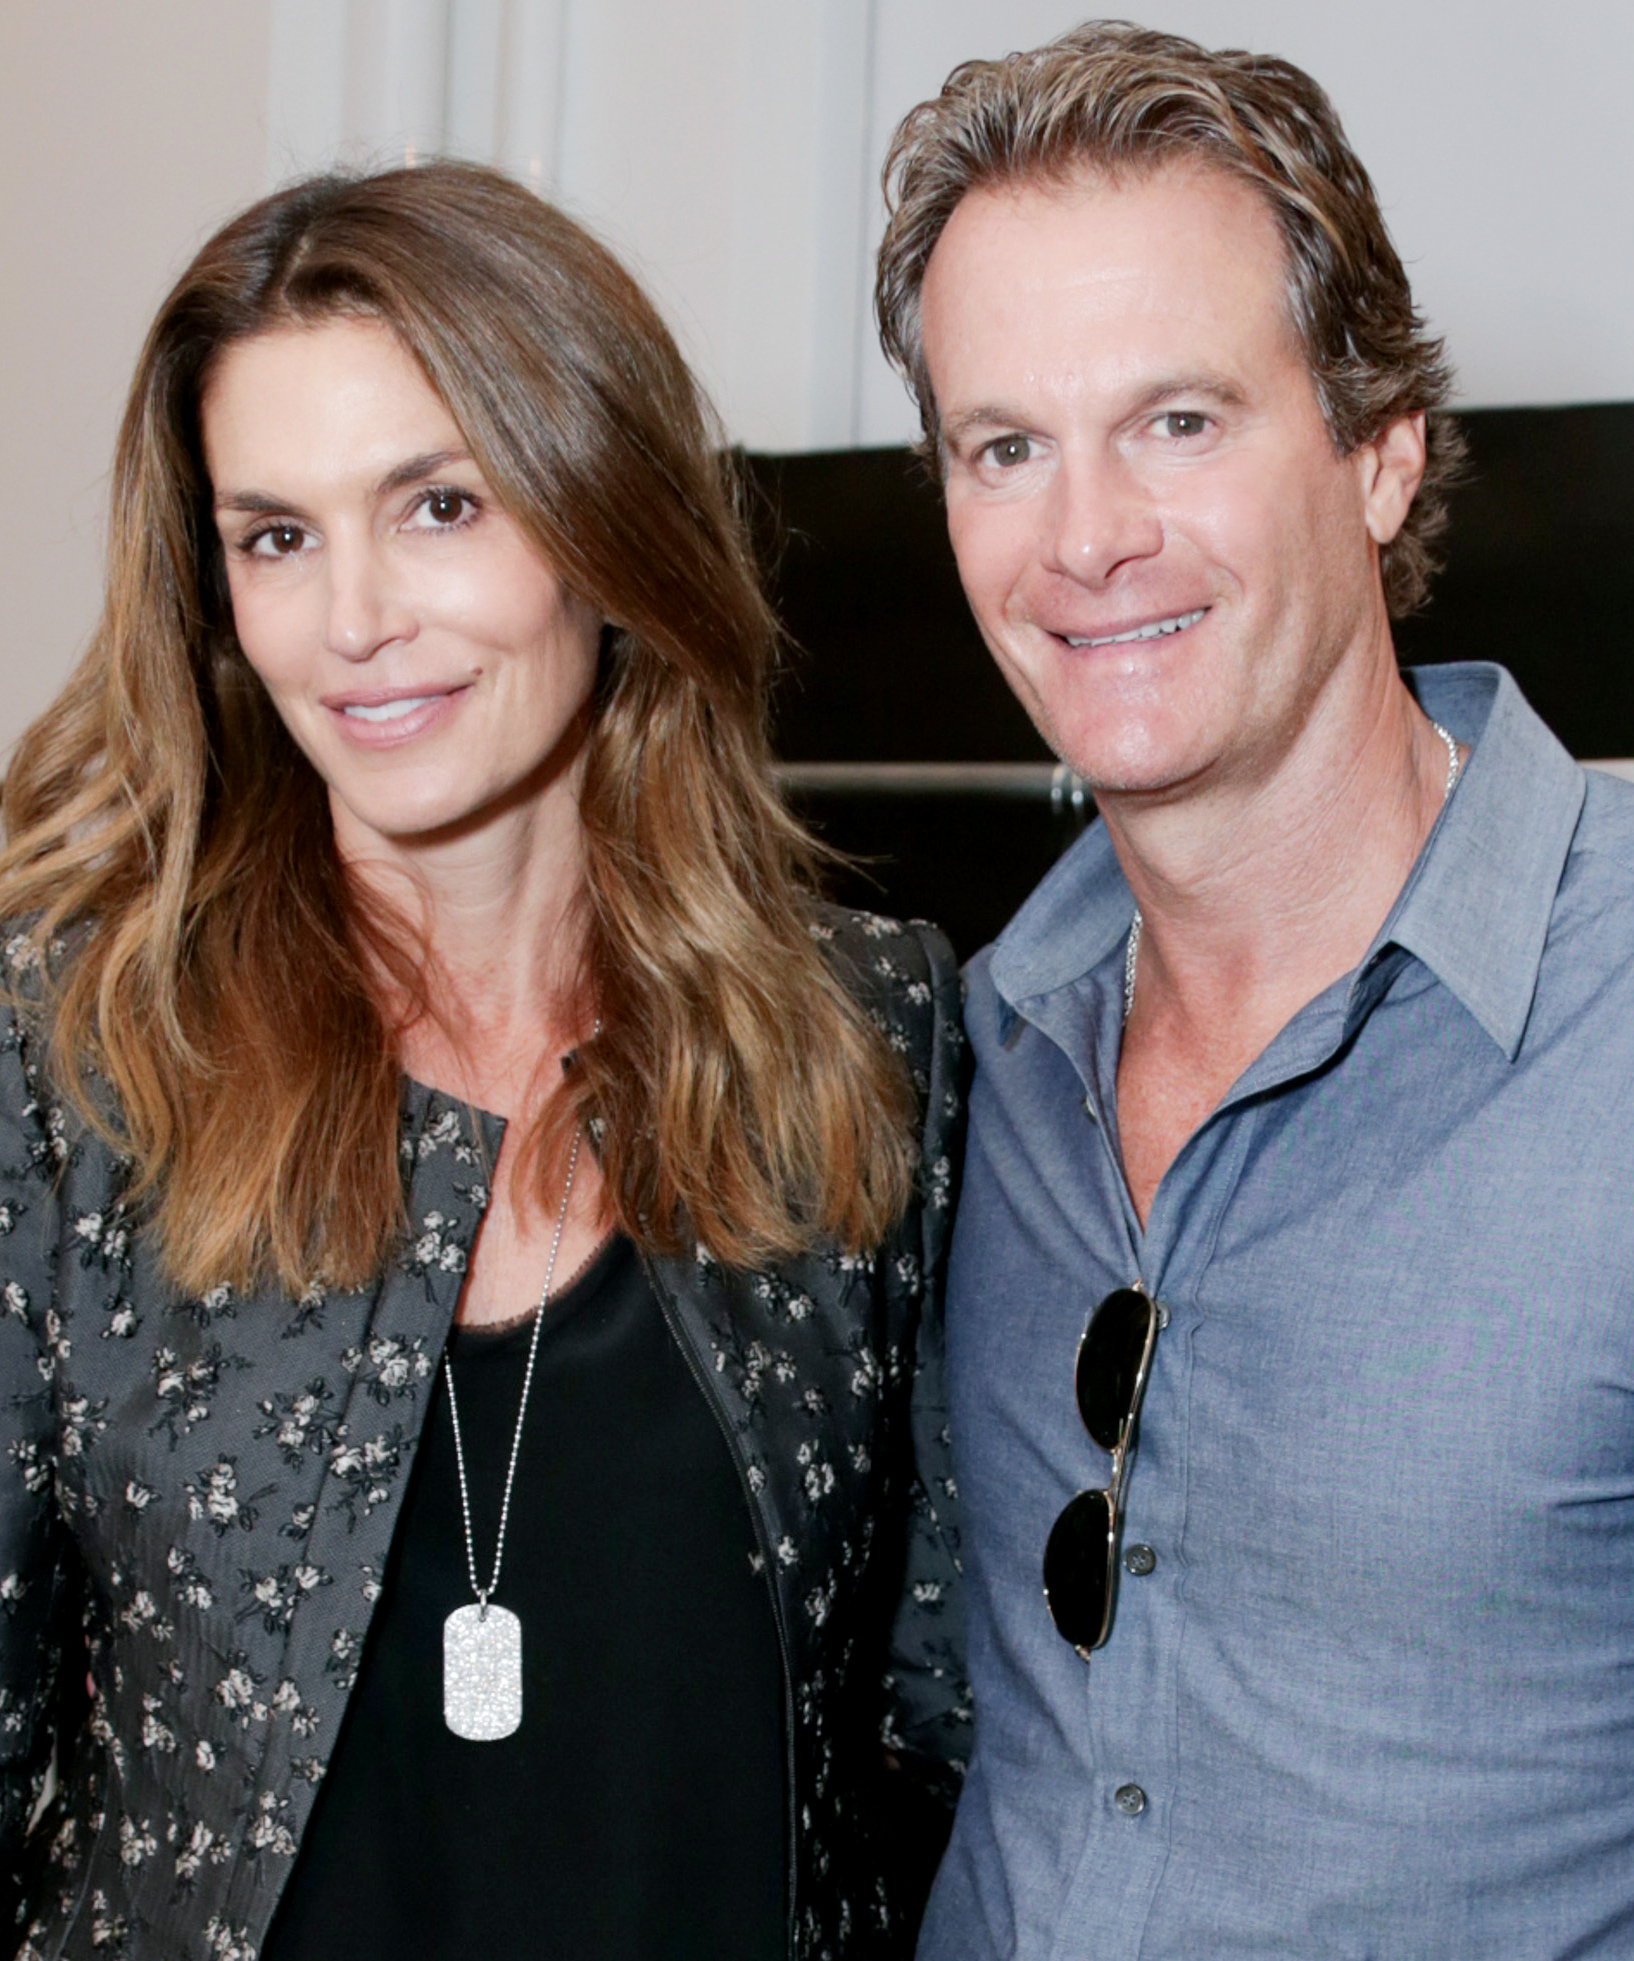 Answer: Cindy Crawford and Rande Gerber